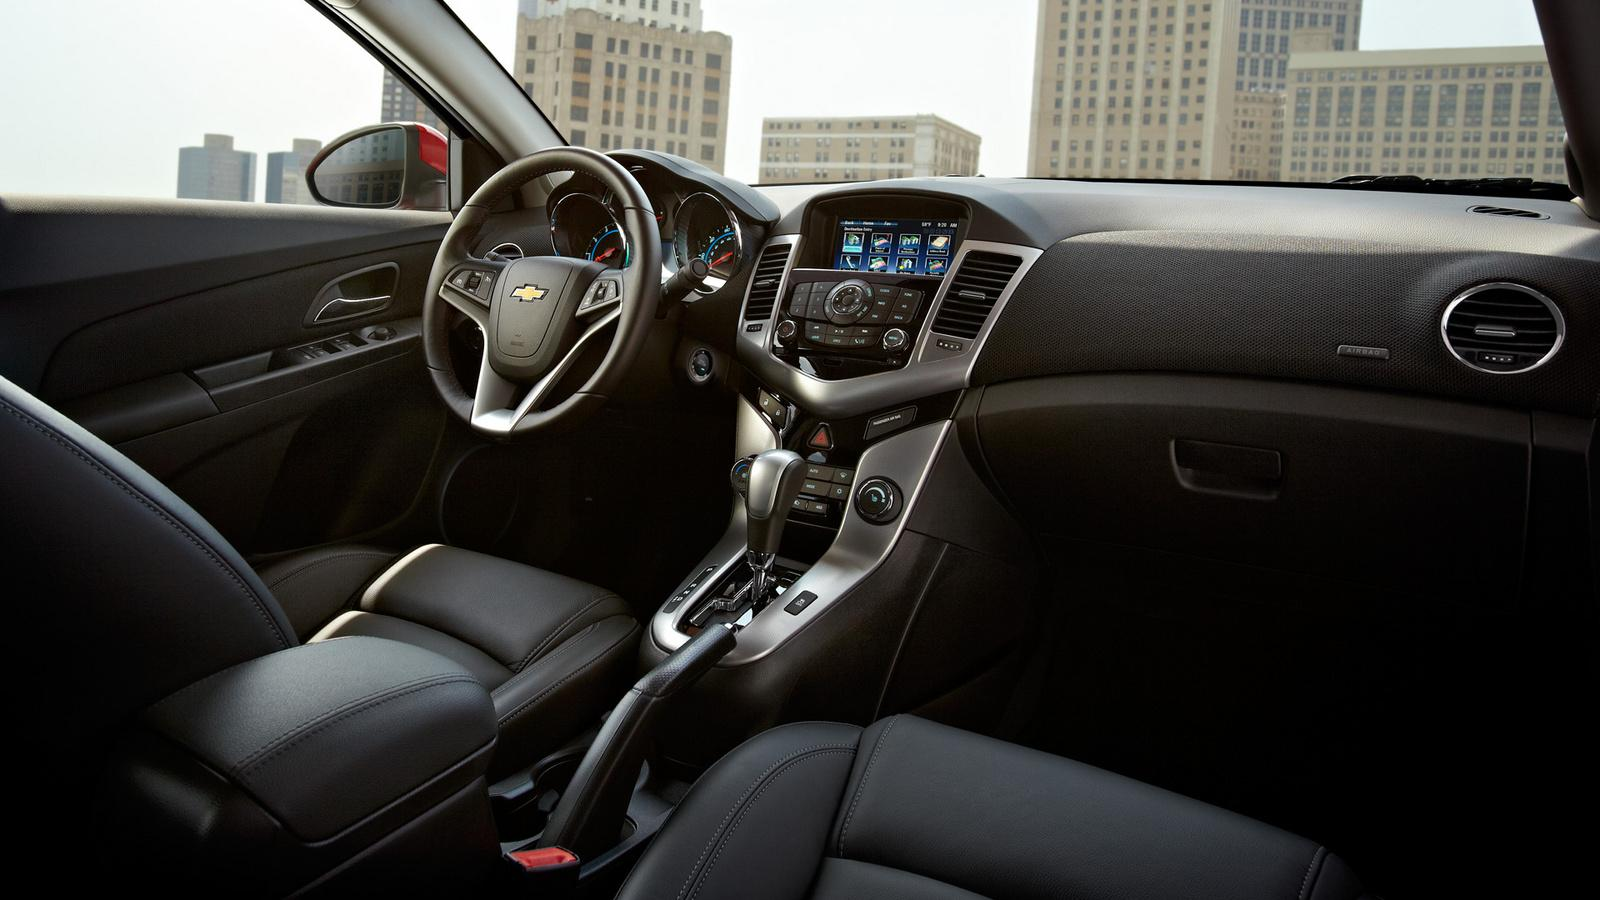 2013 chevy cruze manual gearbox